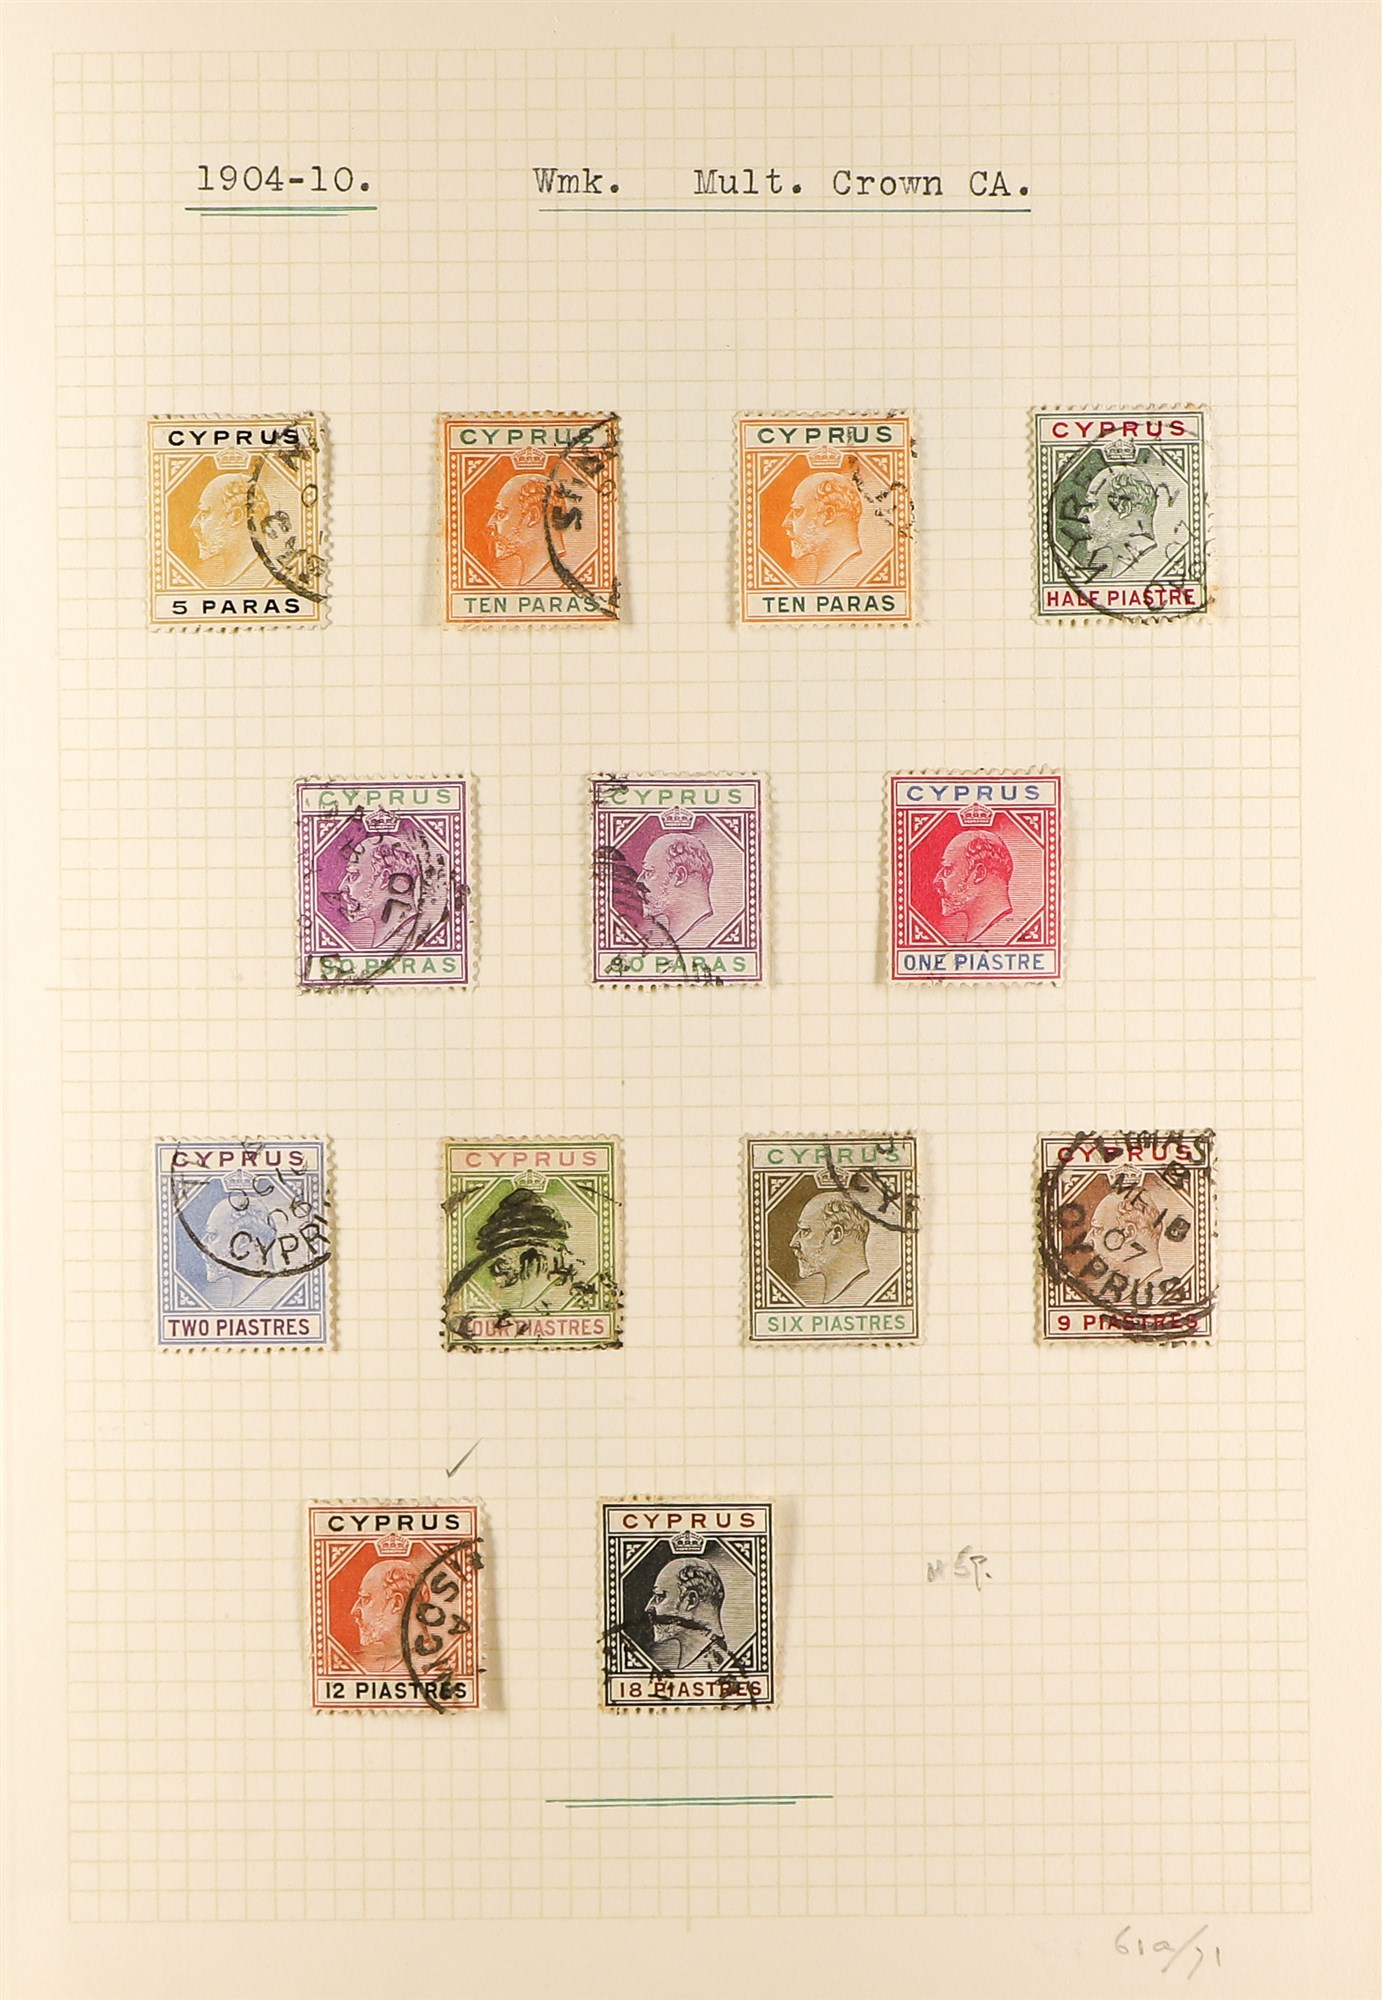 CYPRUS 1880-1935 old used collection incl. 1880 GB overprints including 2½d & ½d plate 15 used, - Image 3 of 7